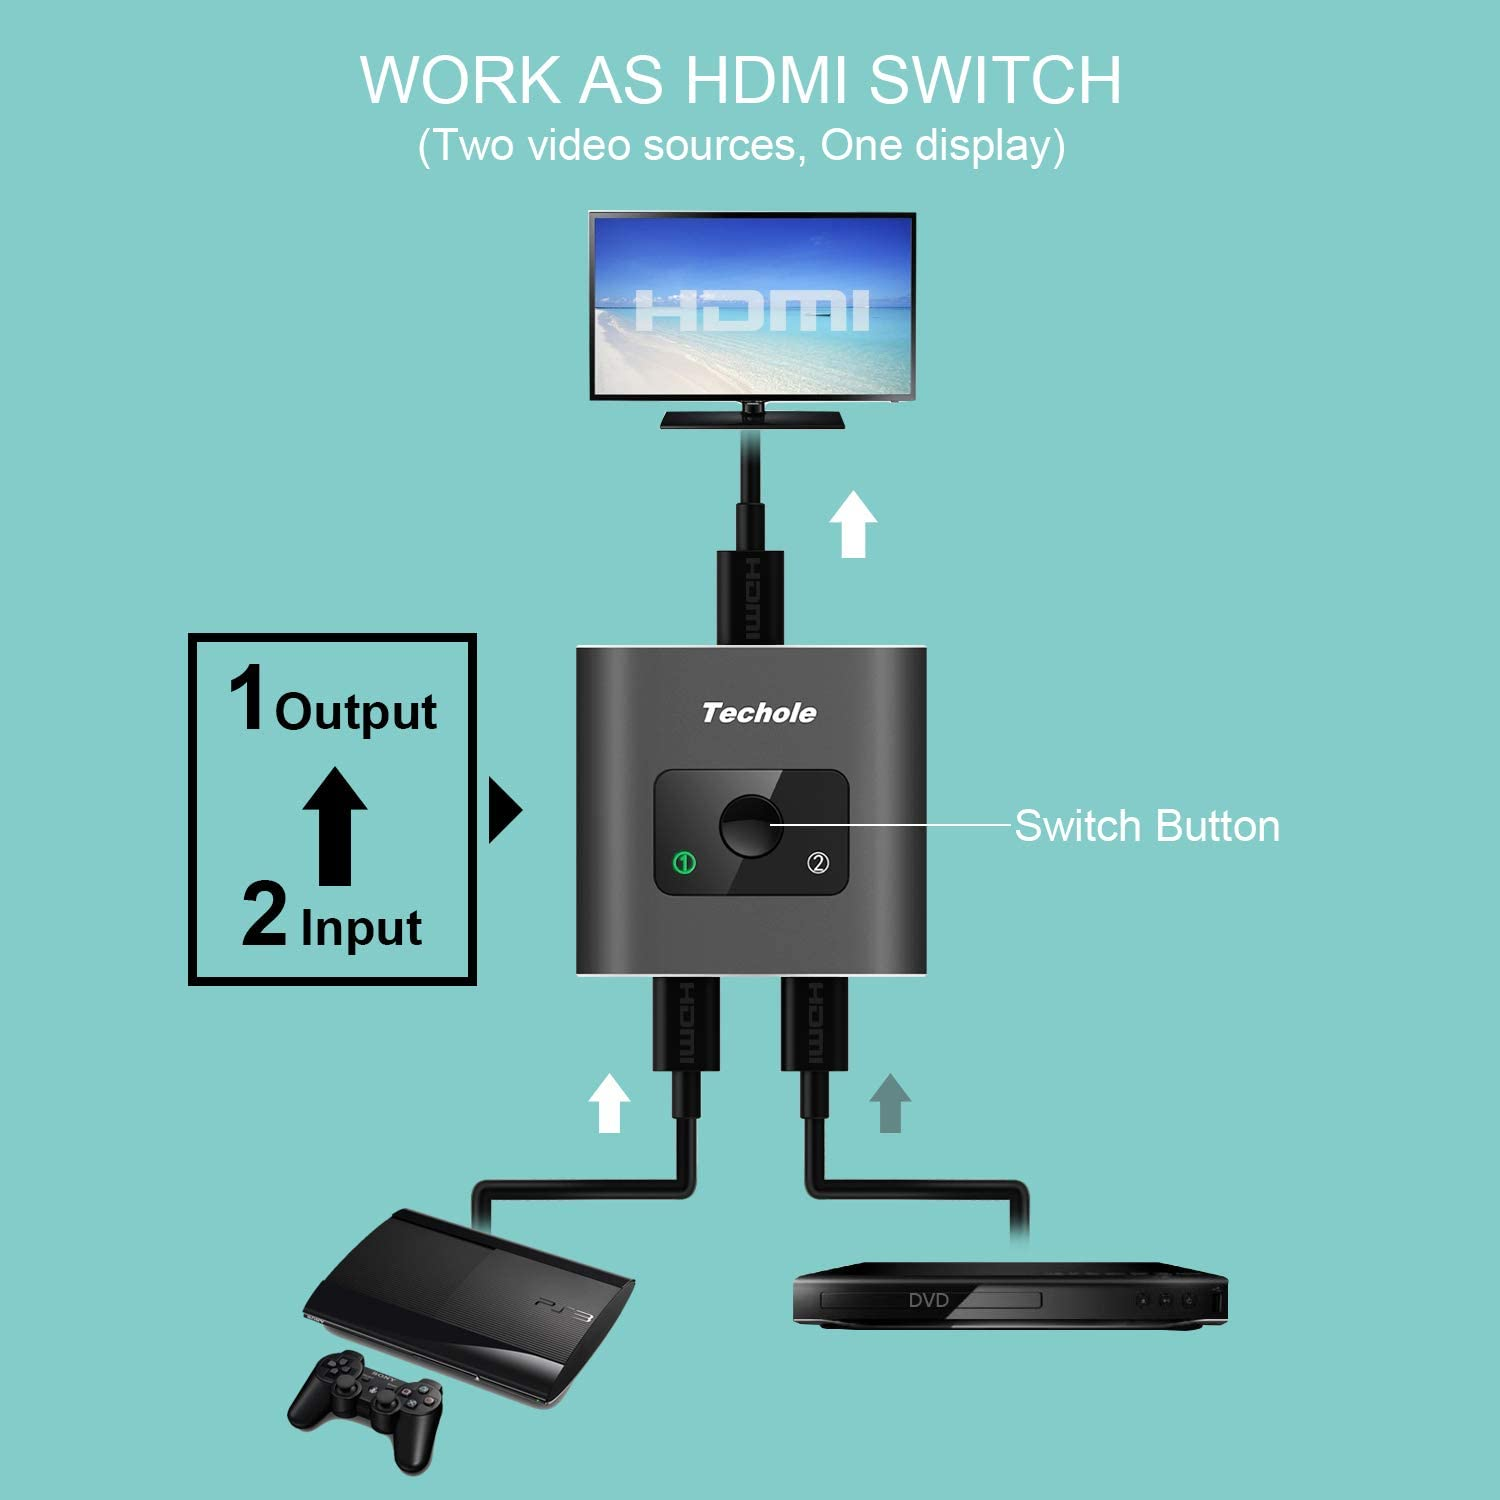 HDMI Switch 4K HDMI Splitter-Techole Aluminum Bi-Directional HDMI Switcher Splitter 2 Input 1 Output, 2 x 1/1 x 2, Support 4K 3D 1080P for Xbox PS4 Roku HDTV Fire Stick Blu Ray(HDMI CABLE NOT INCLUDE): Home Audio & Theater